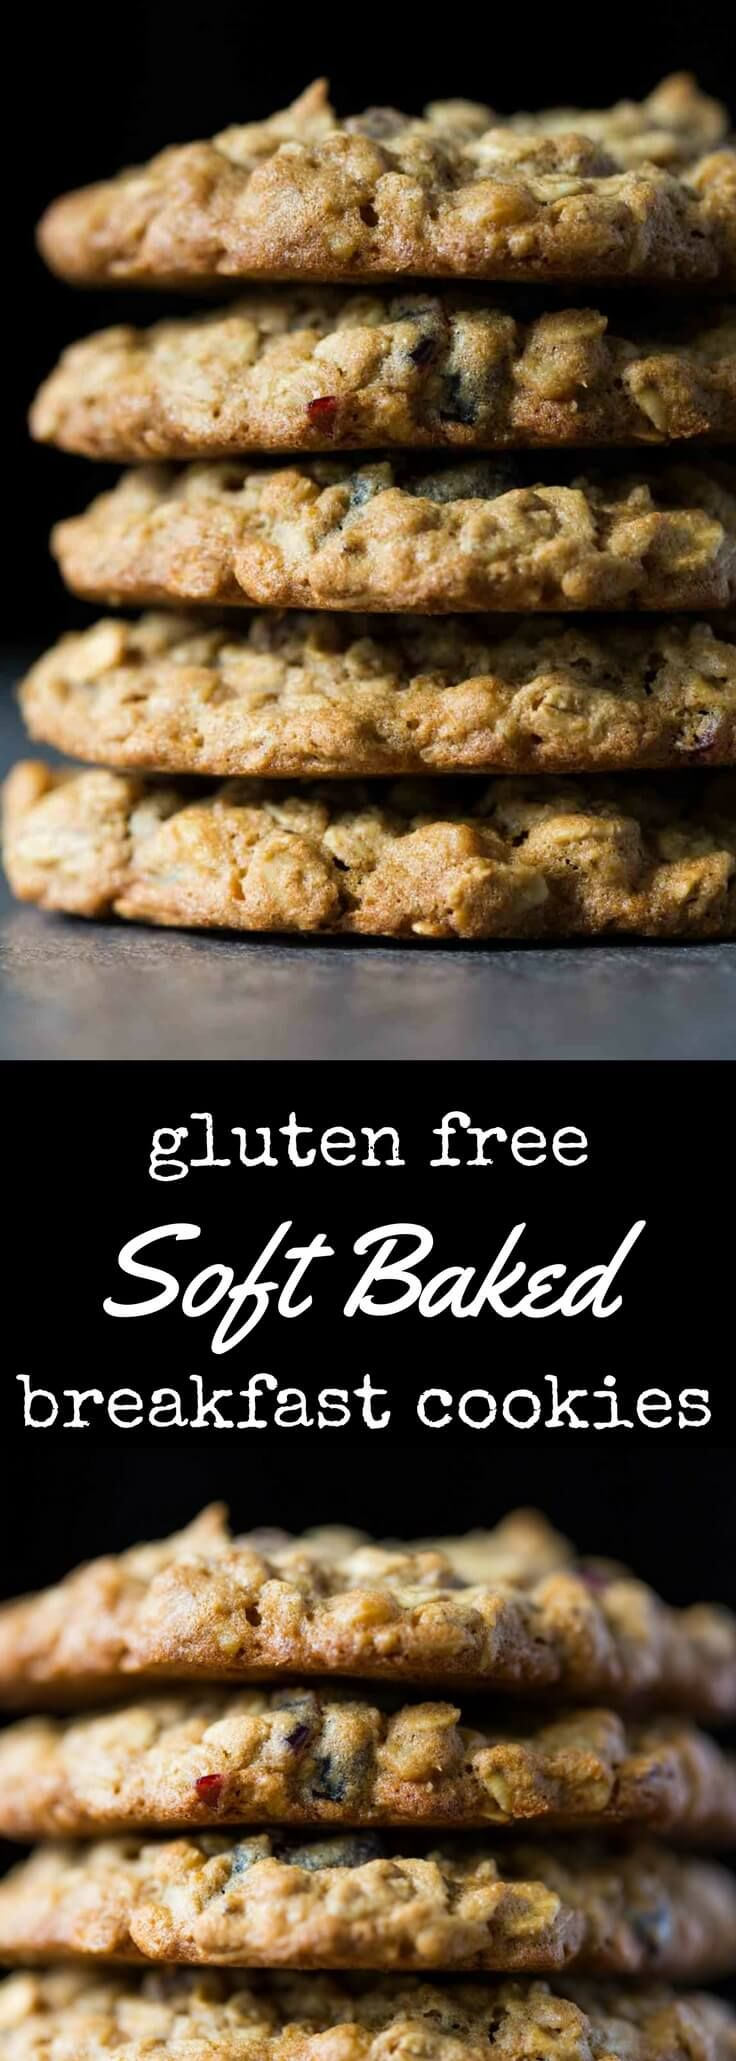 You can't miss with these soft baked gluten free breakfast cookies, because a cookie breakfast is always the best breakfast. Chewy, soft, and filled with good stuff like extra thick rolled oats, walnuts, dried cranberries, and golden flaxseed meal. via @recipeforperfec @bobsredmill #glutenfree #ad #breakfast #cookies